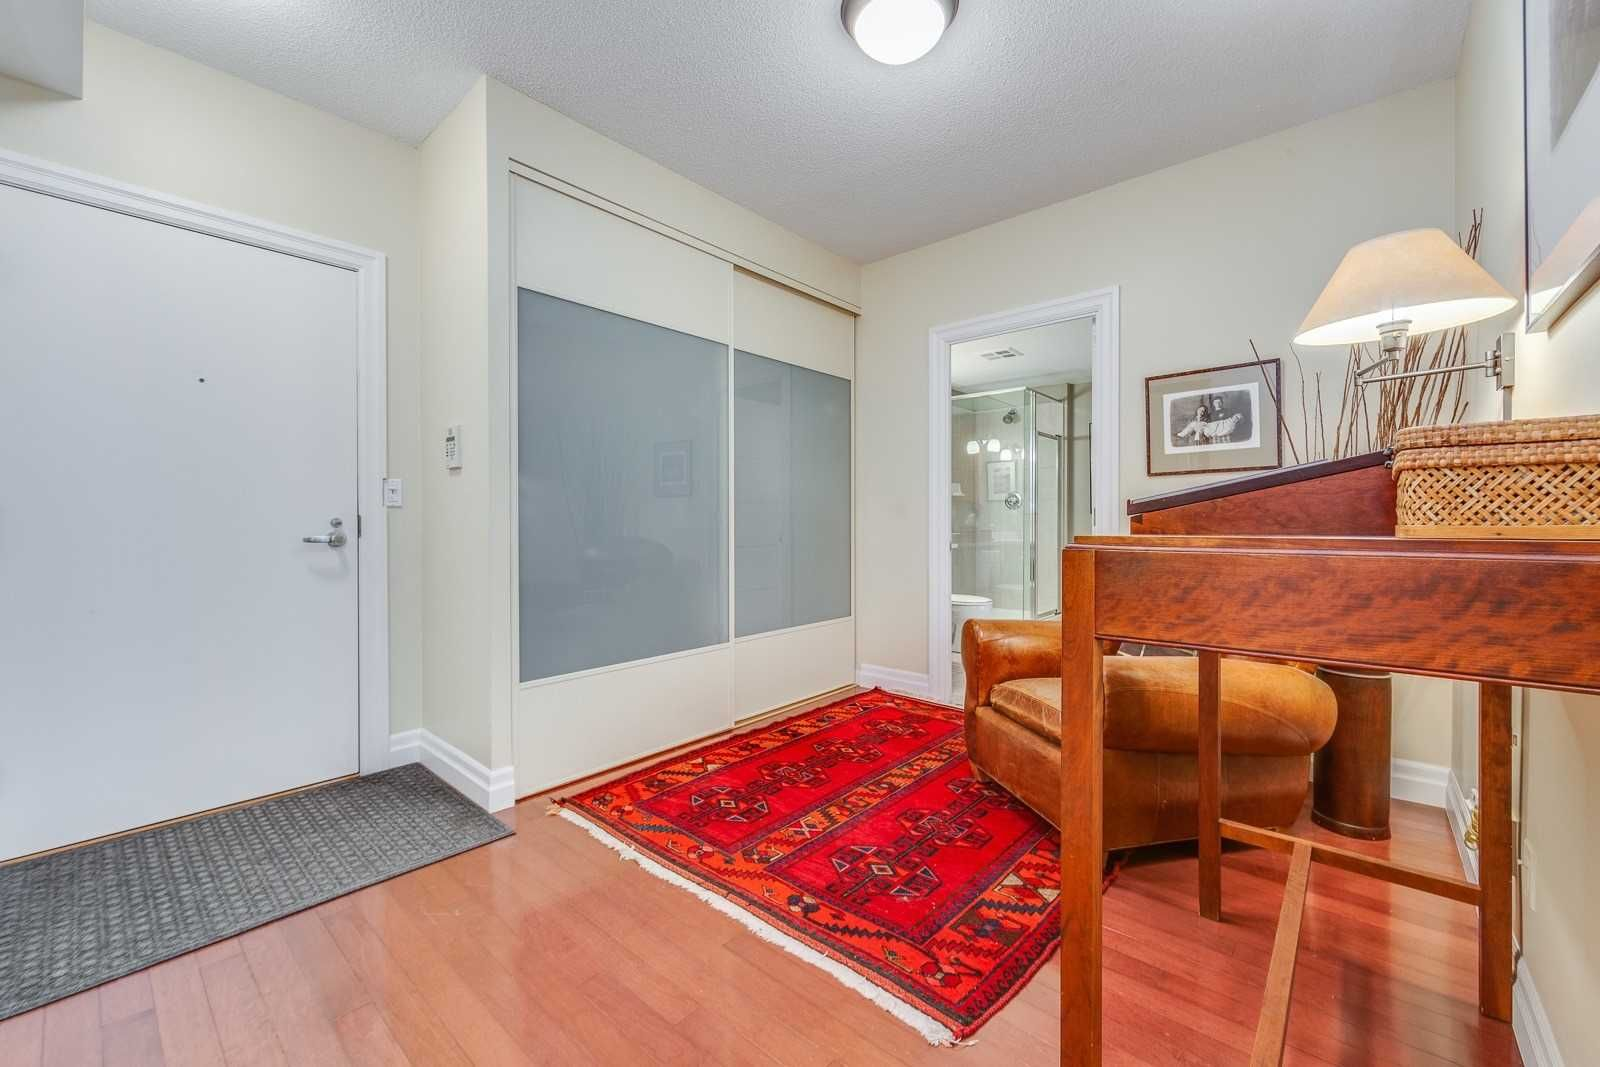 168 King St E, unit 1605 for rent in Toronto - image #2